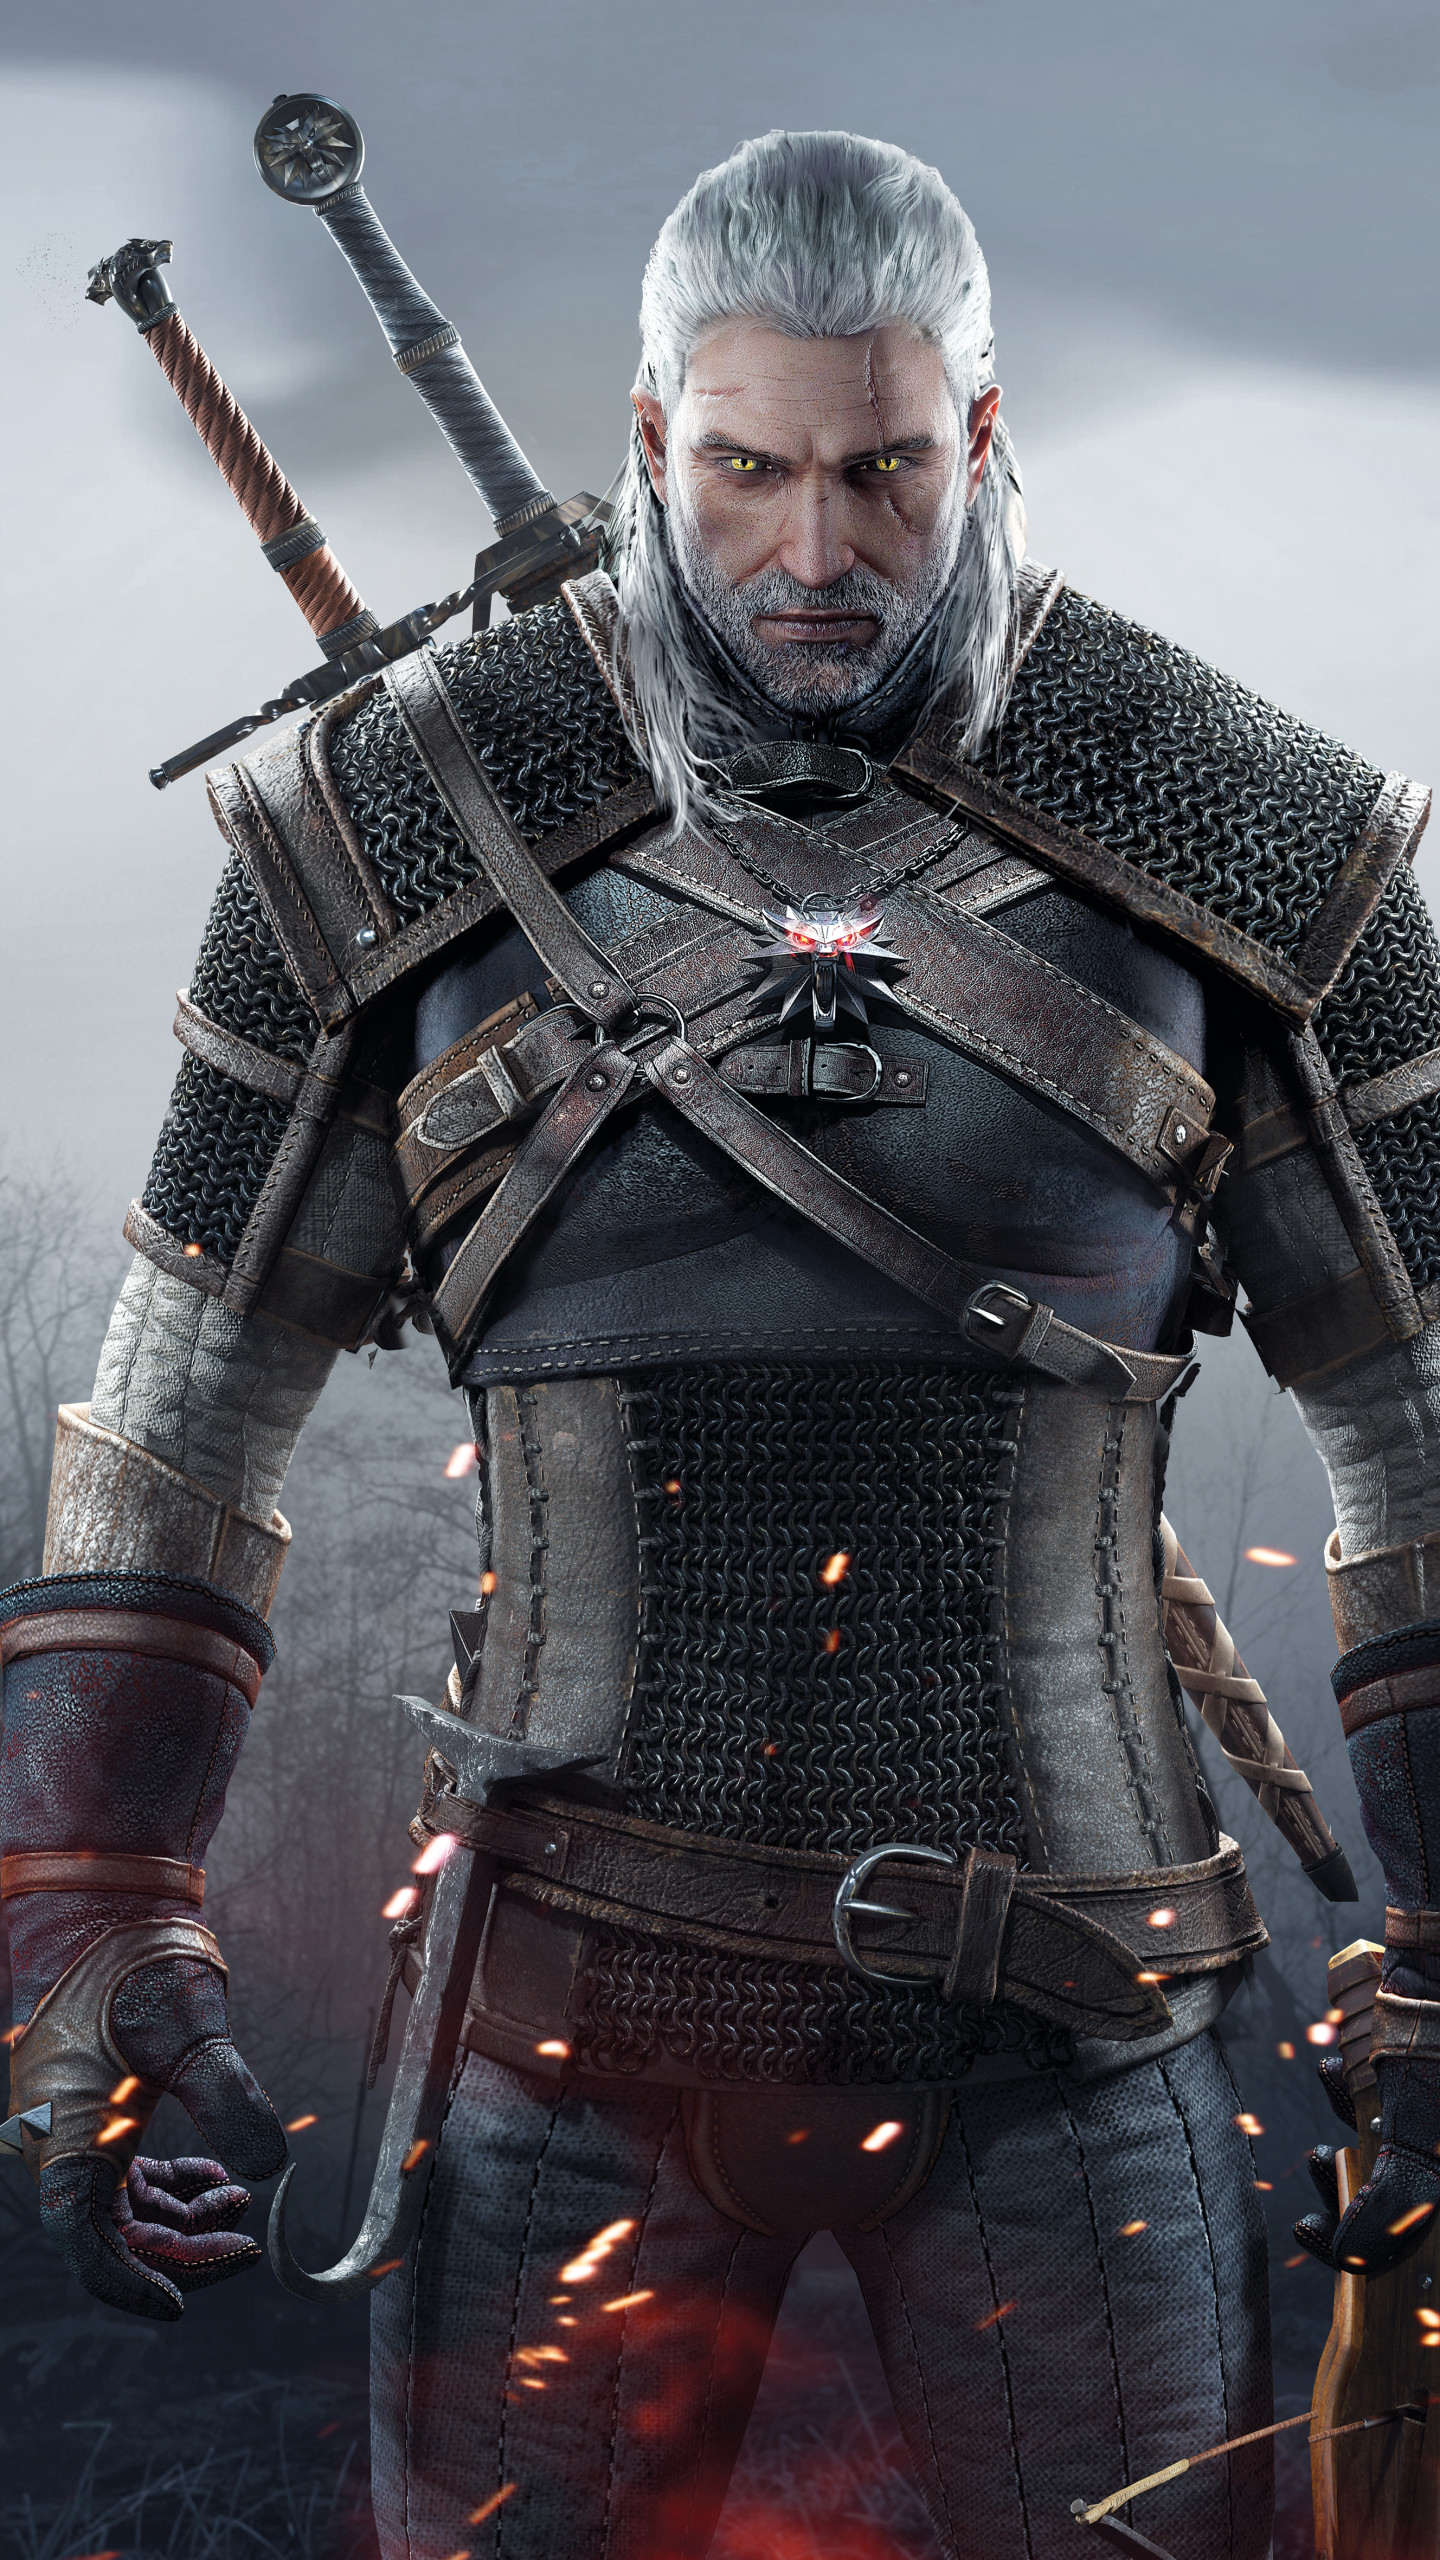 Witcher 3 Iphone Wallpaper 76 Images